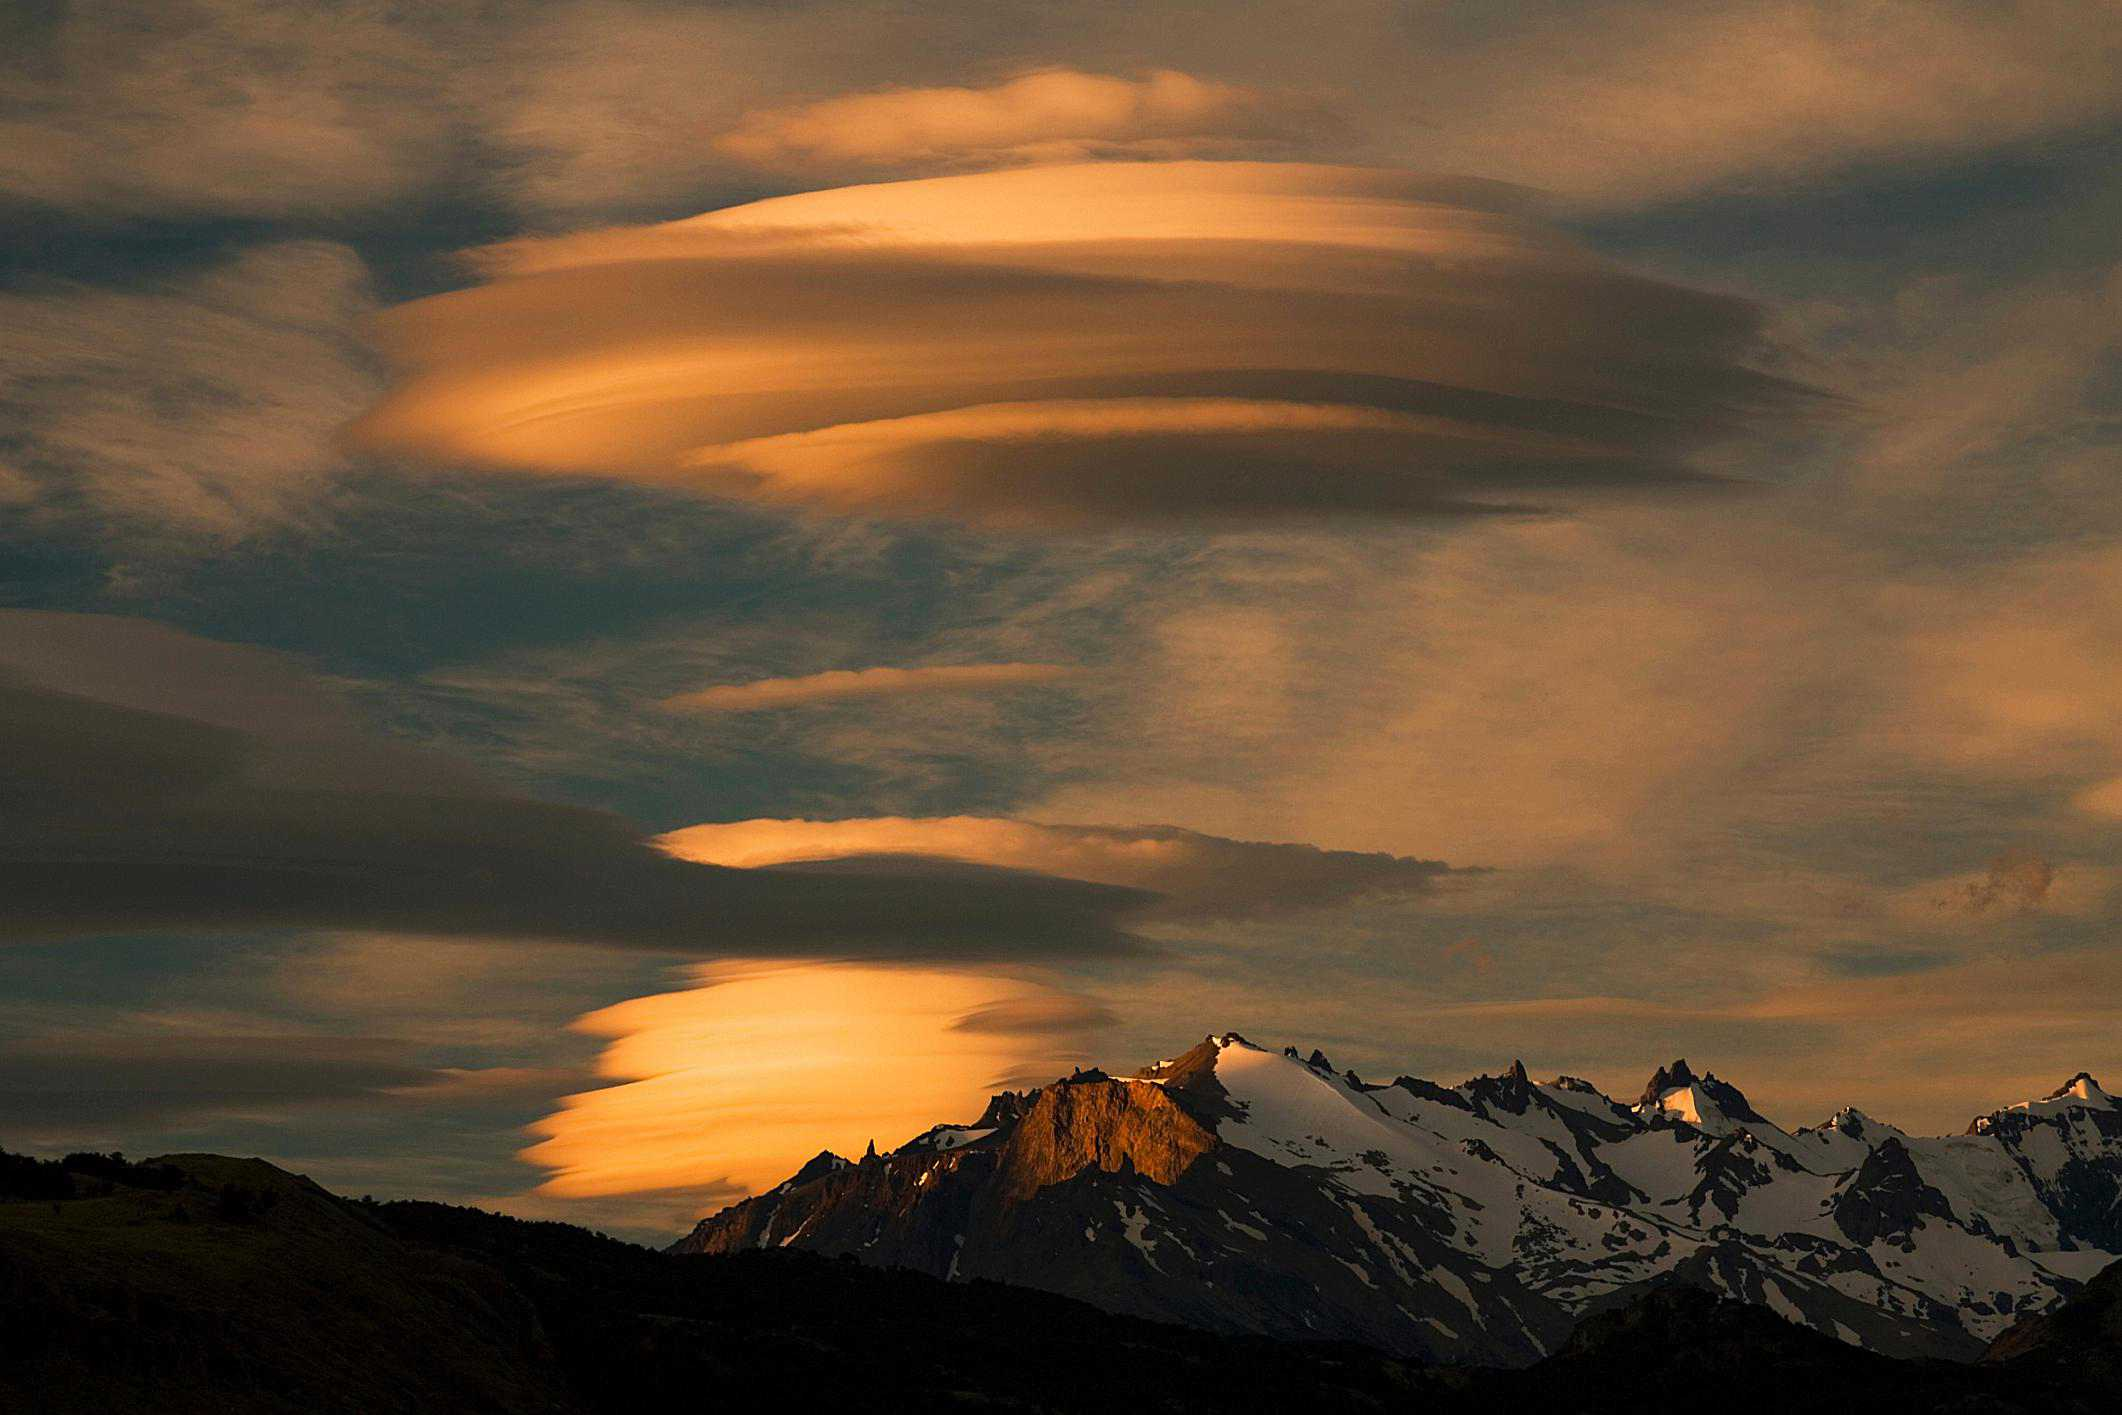 Lenticular clouds over the Andes Mountains in El Chalten, Argentina.